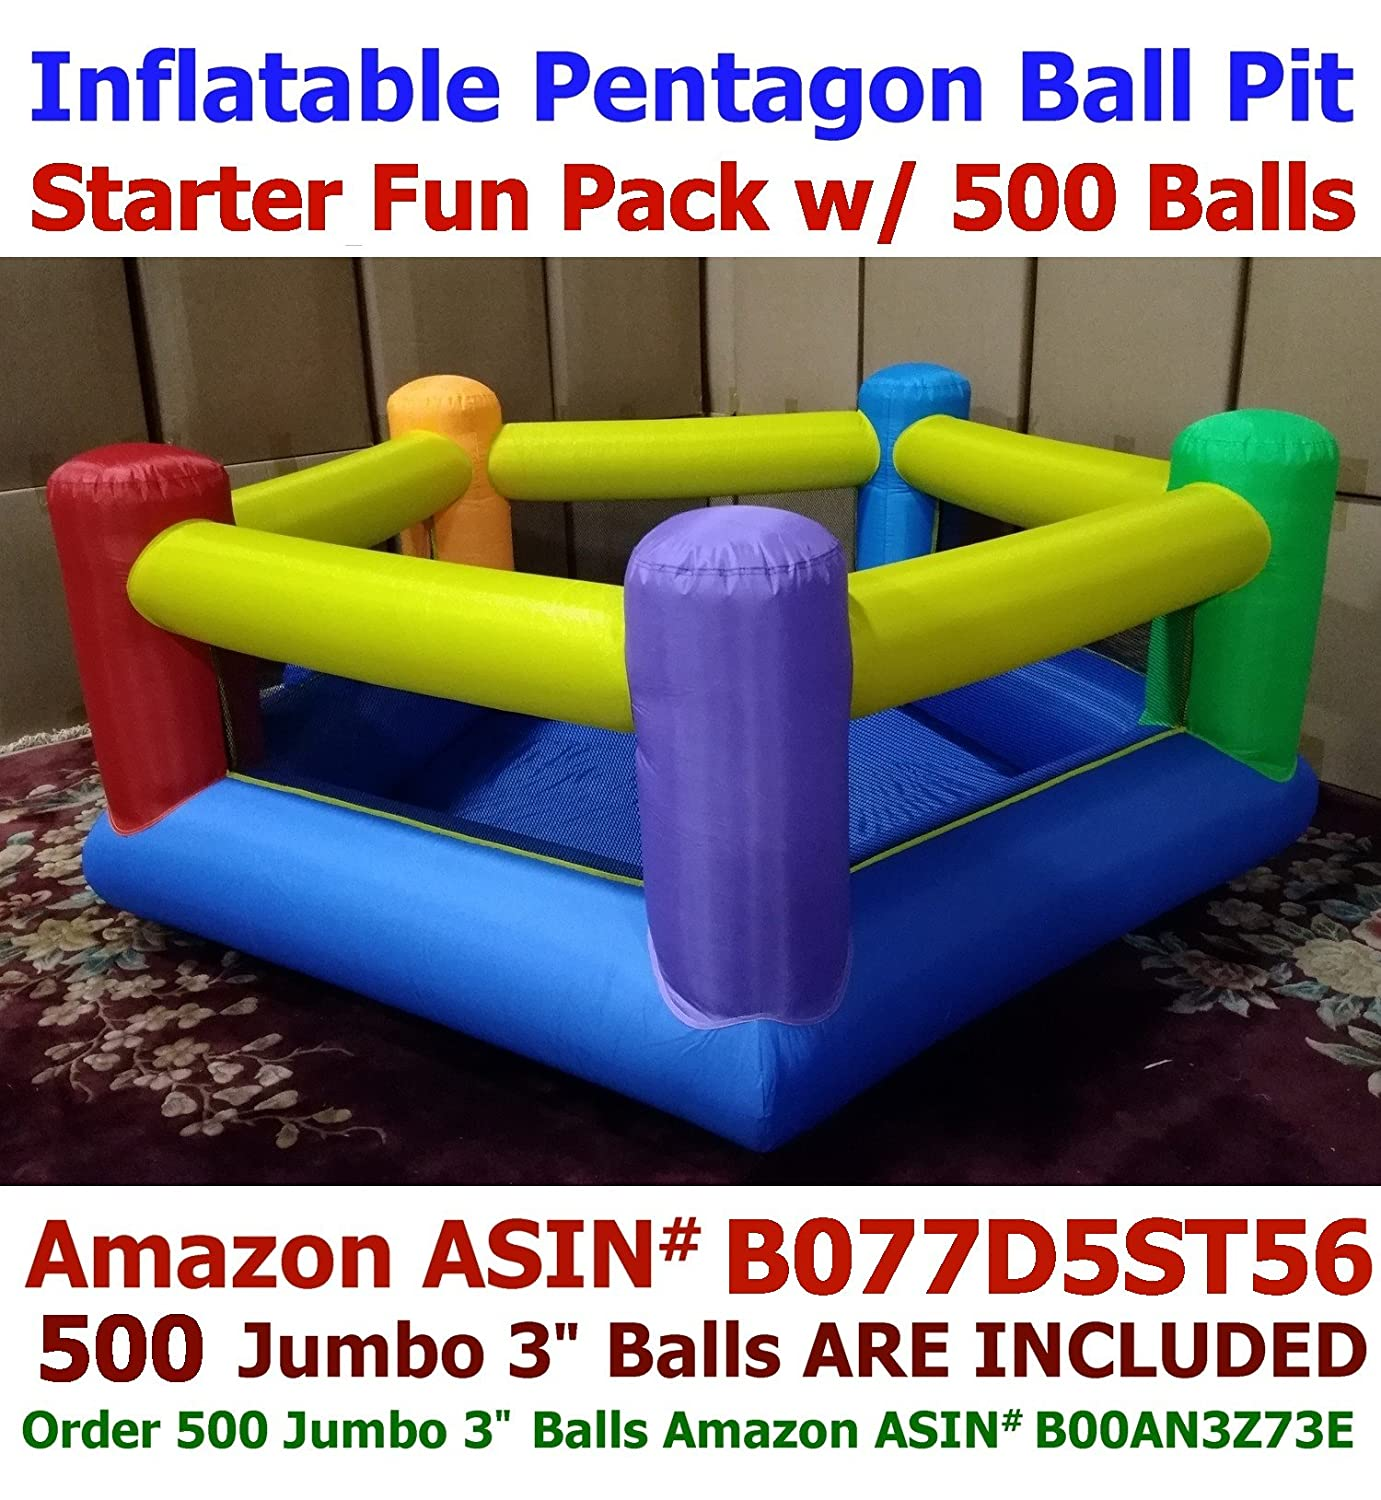 My Bouncer Perfect Little Ball Pit - Great for Indoor Use - 84 L x 72 W x 40 H w/ Blower Pump (This is not a Bounce House, 1000 Jumbo 3 Balls Required Not Included )